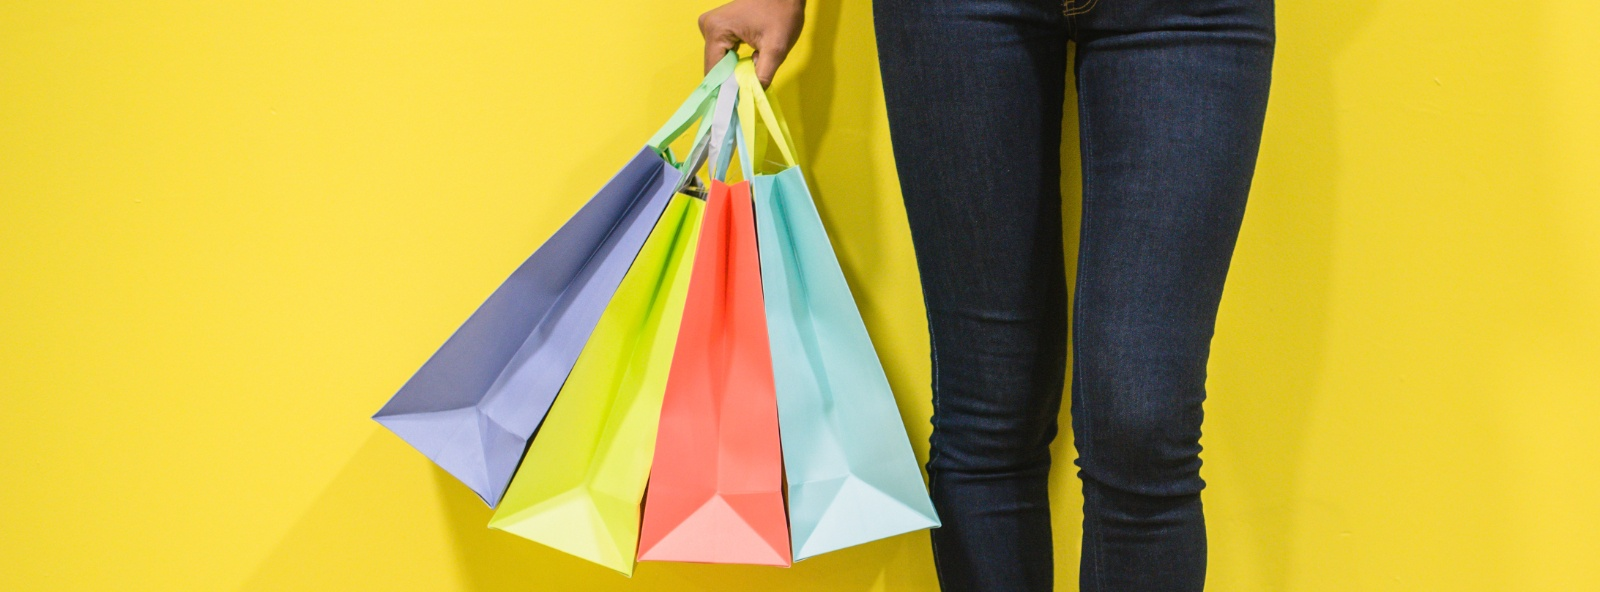 How Online Retailers Can Use Site-Search to Drive Revenue